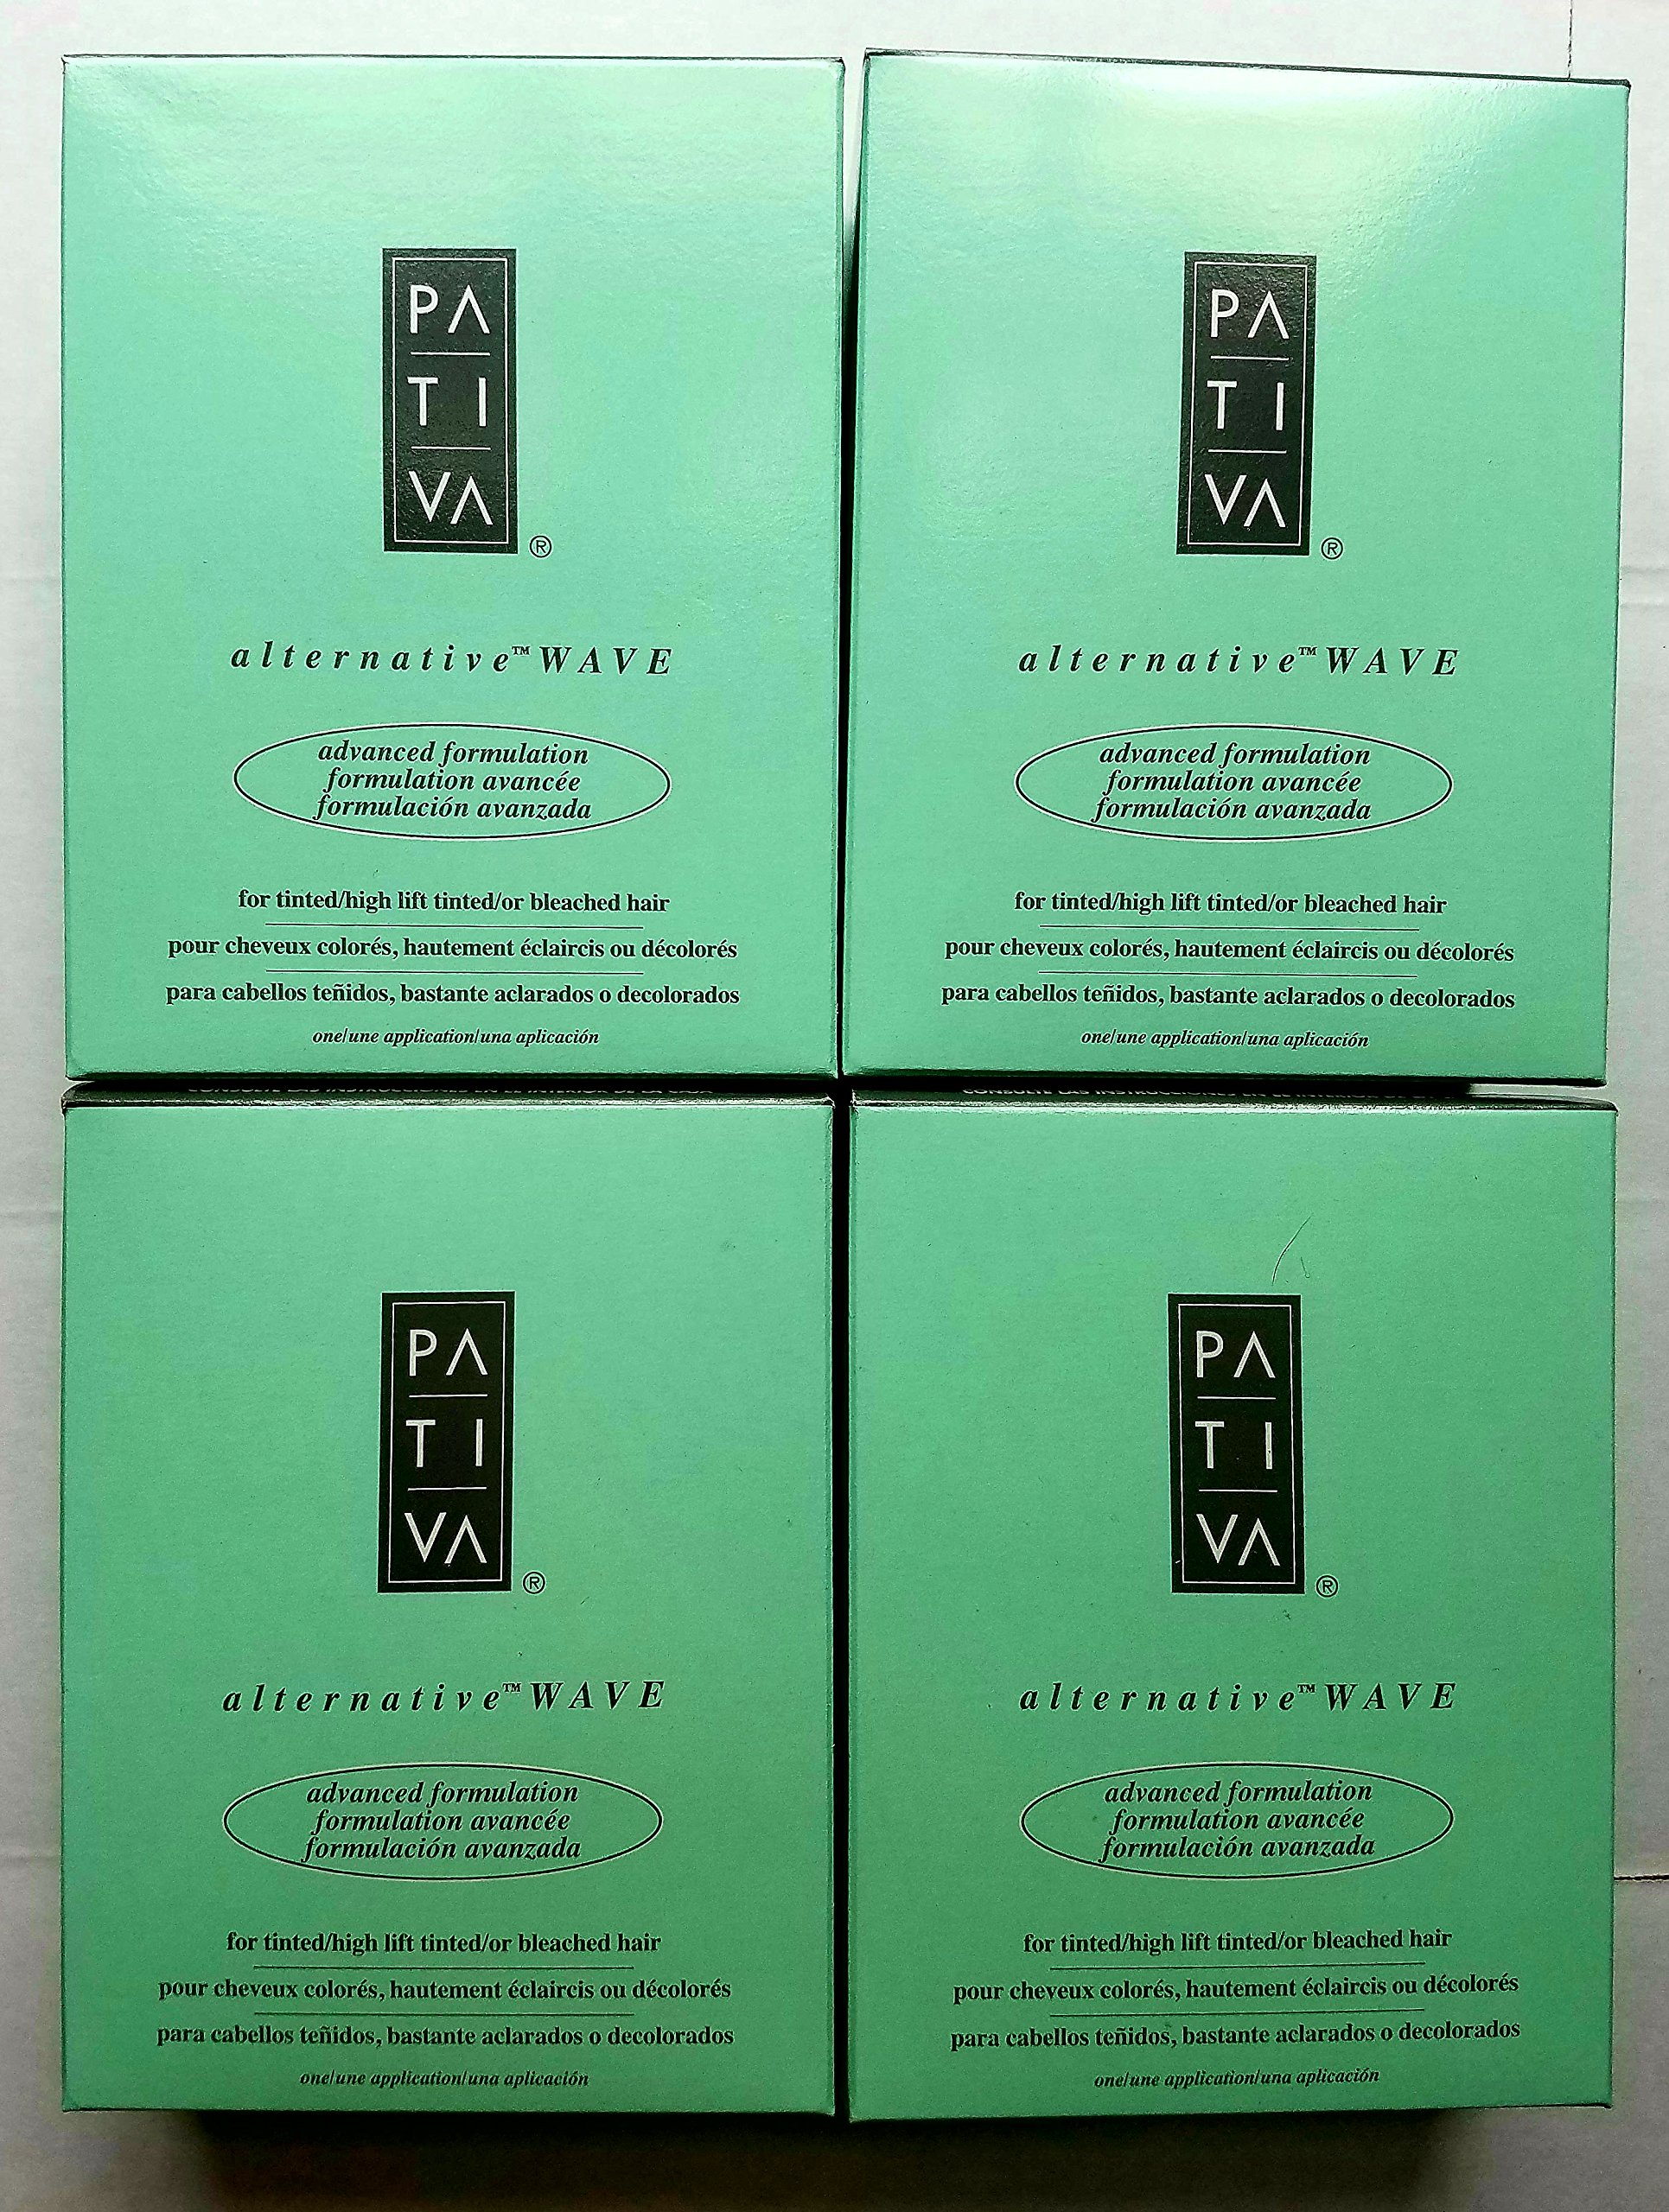 Nucleic-A PATIVA Alternative Wave Advanced Formulation Perm for Tinted/High Lift Tinted/or Bleached Hair - 4 Pack!